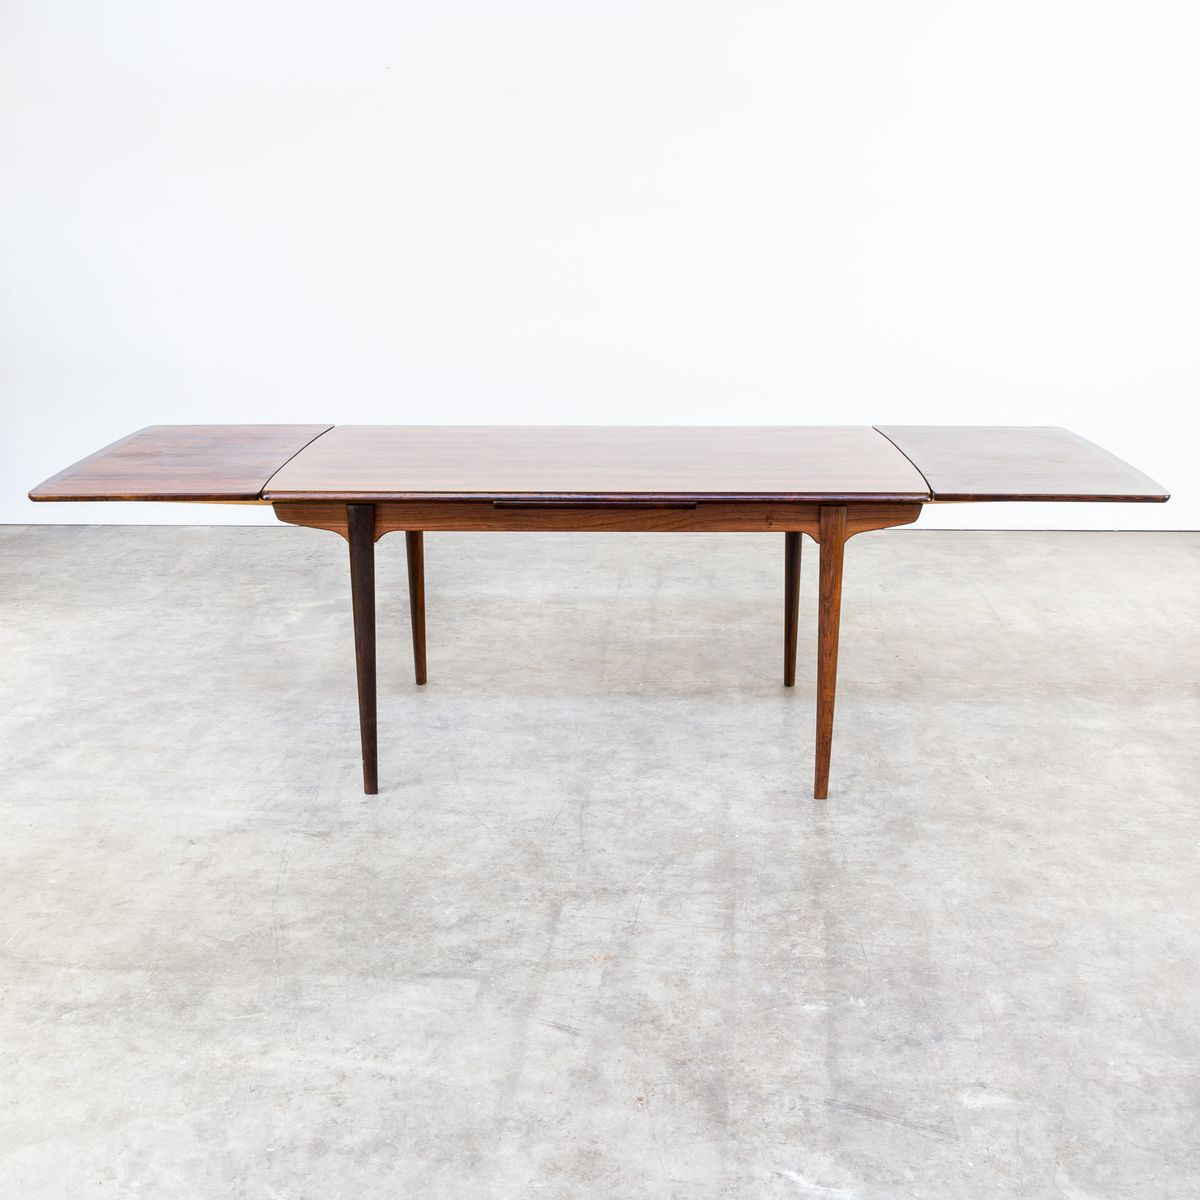 Mid Century Rosewood Extendable Dining Table 1960s for  : mid century rosewood extendable dining table 1960s 6 from www.pamono.co.uk size 1200 x 1200 jpeg 87kB